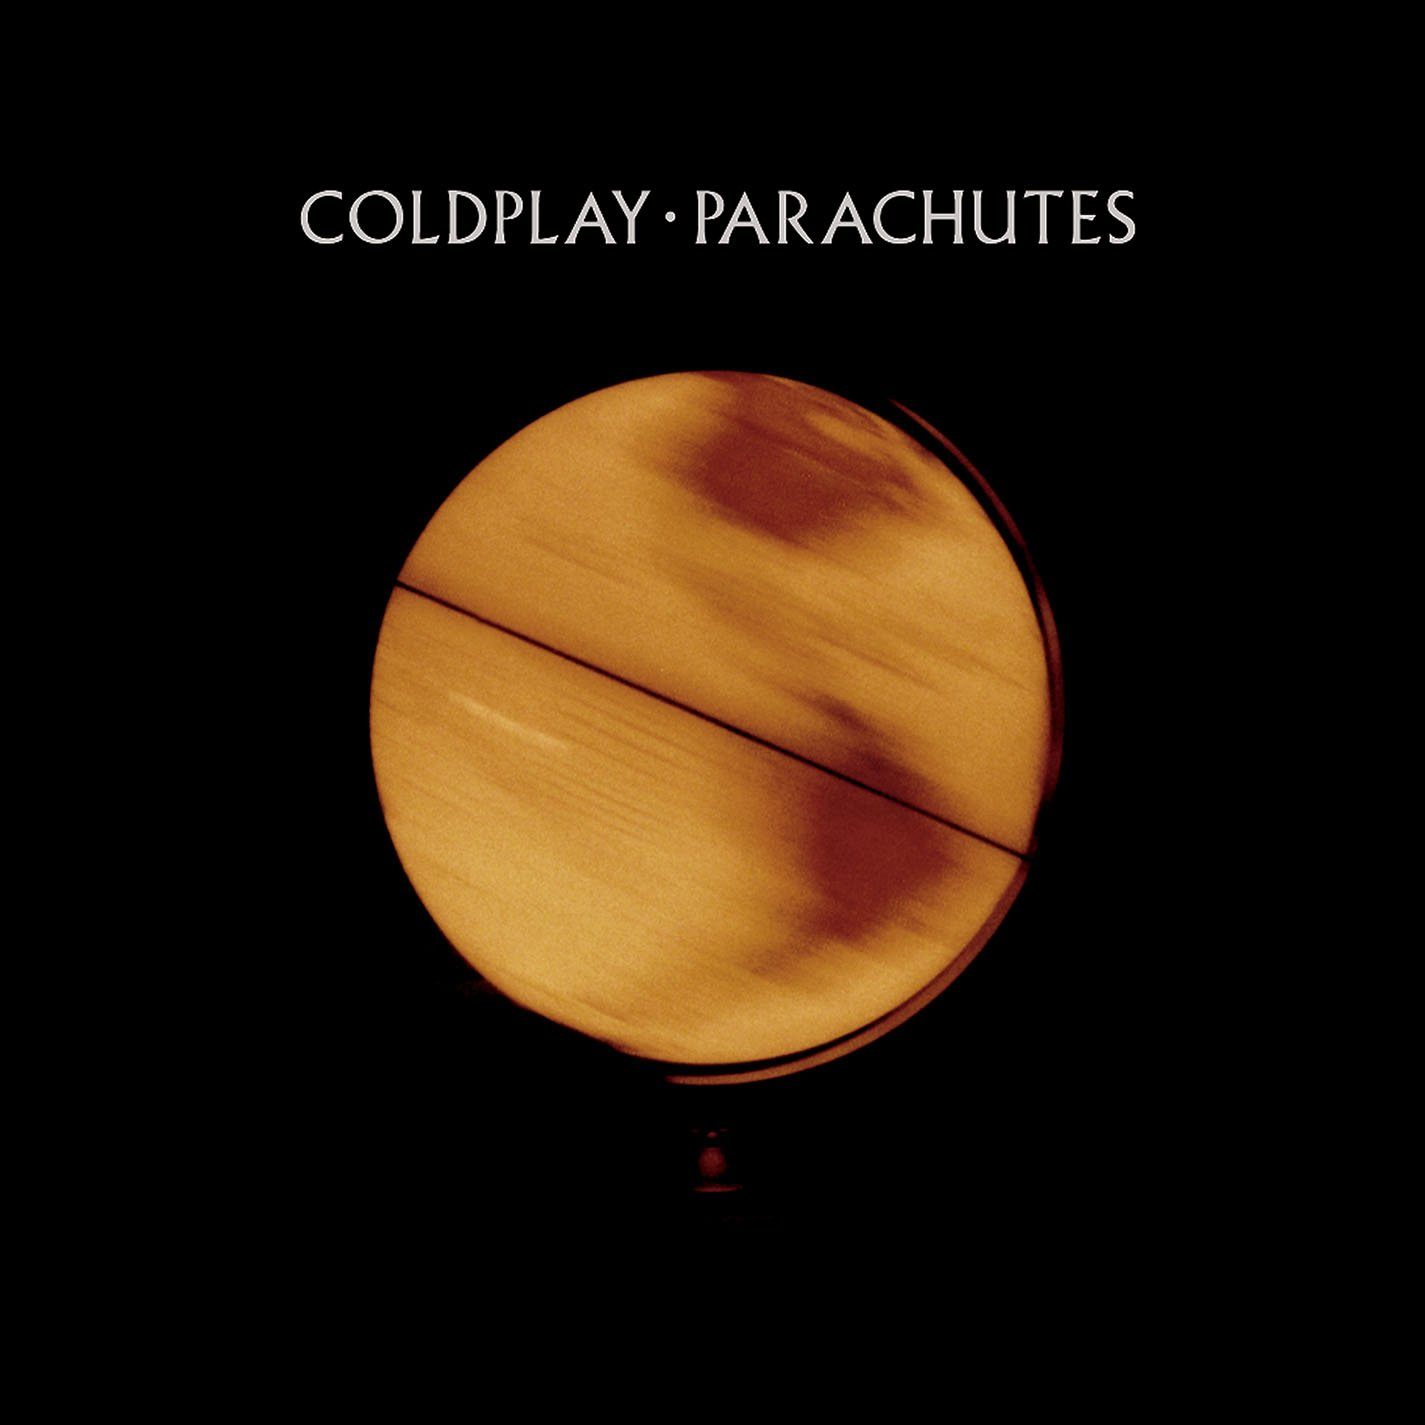 Full Albums: Coldplay's 'Parachutes'